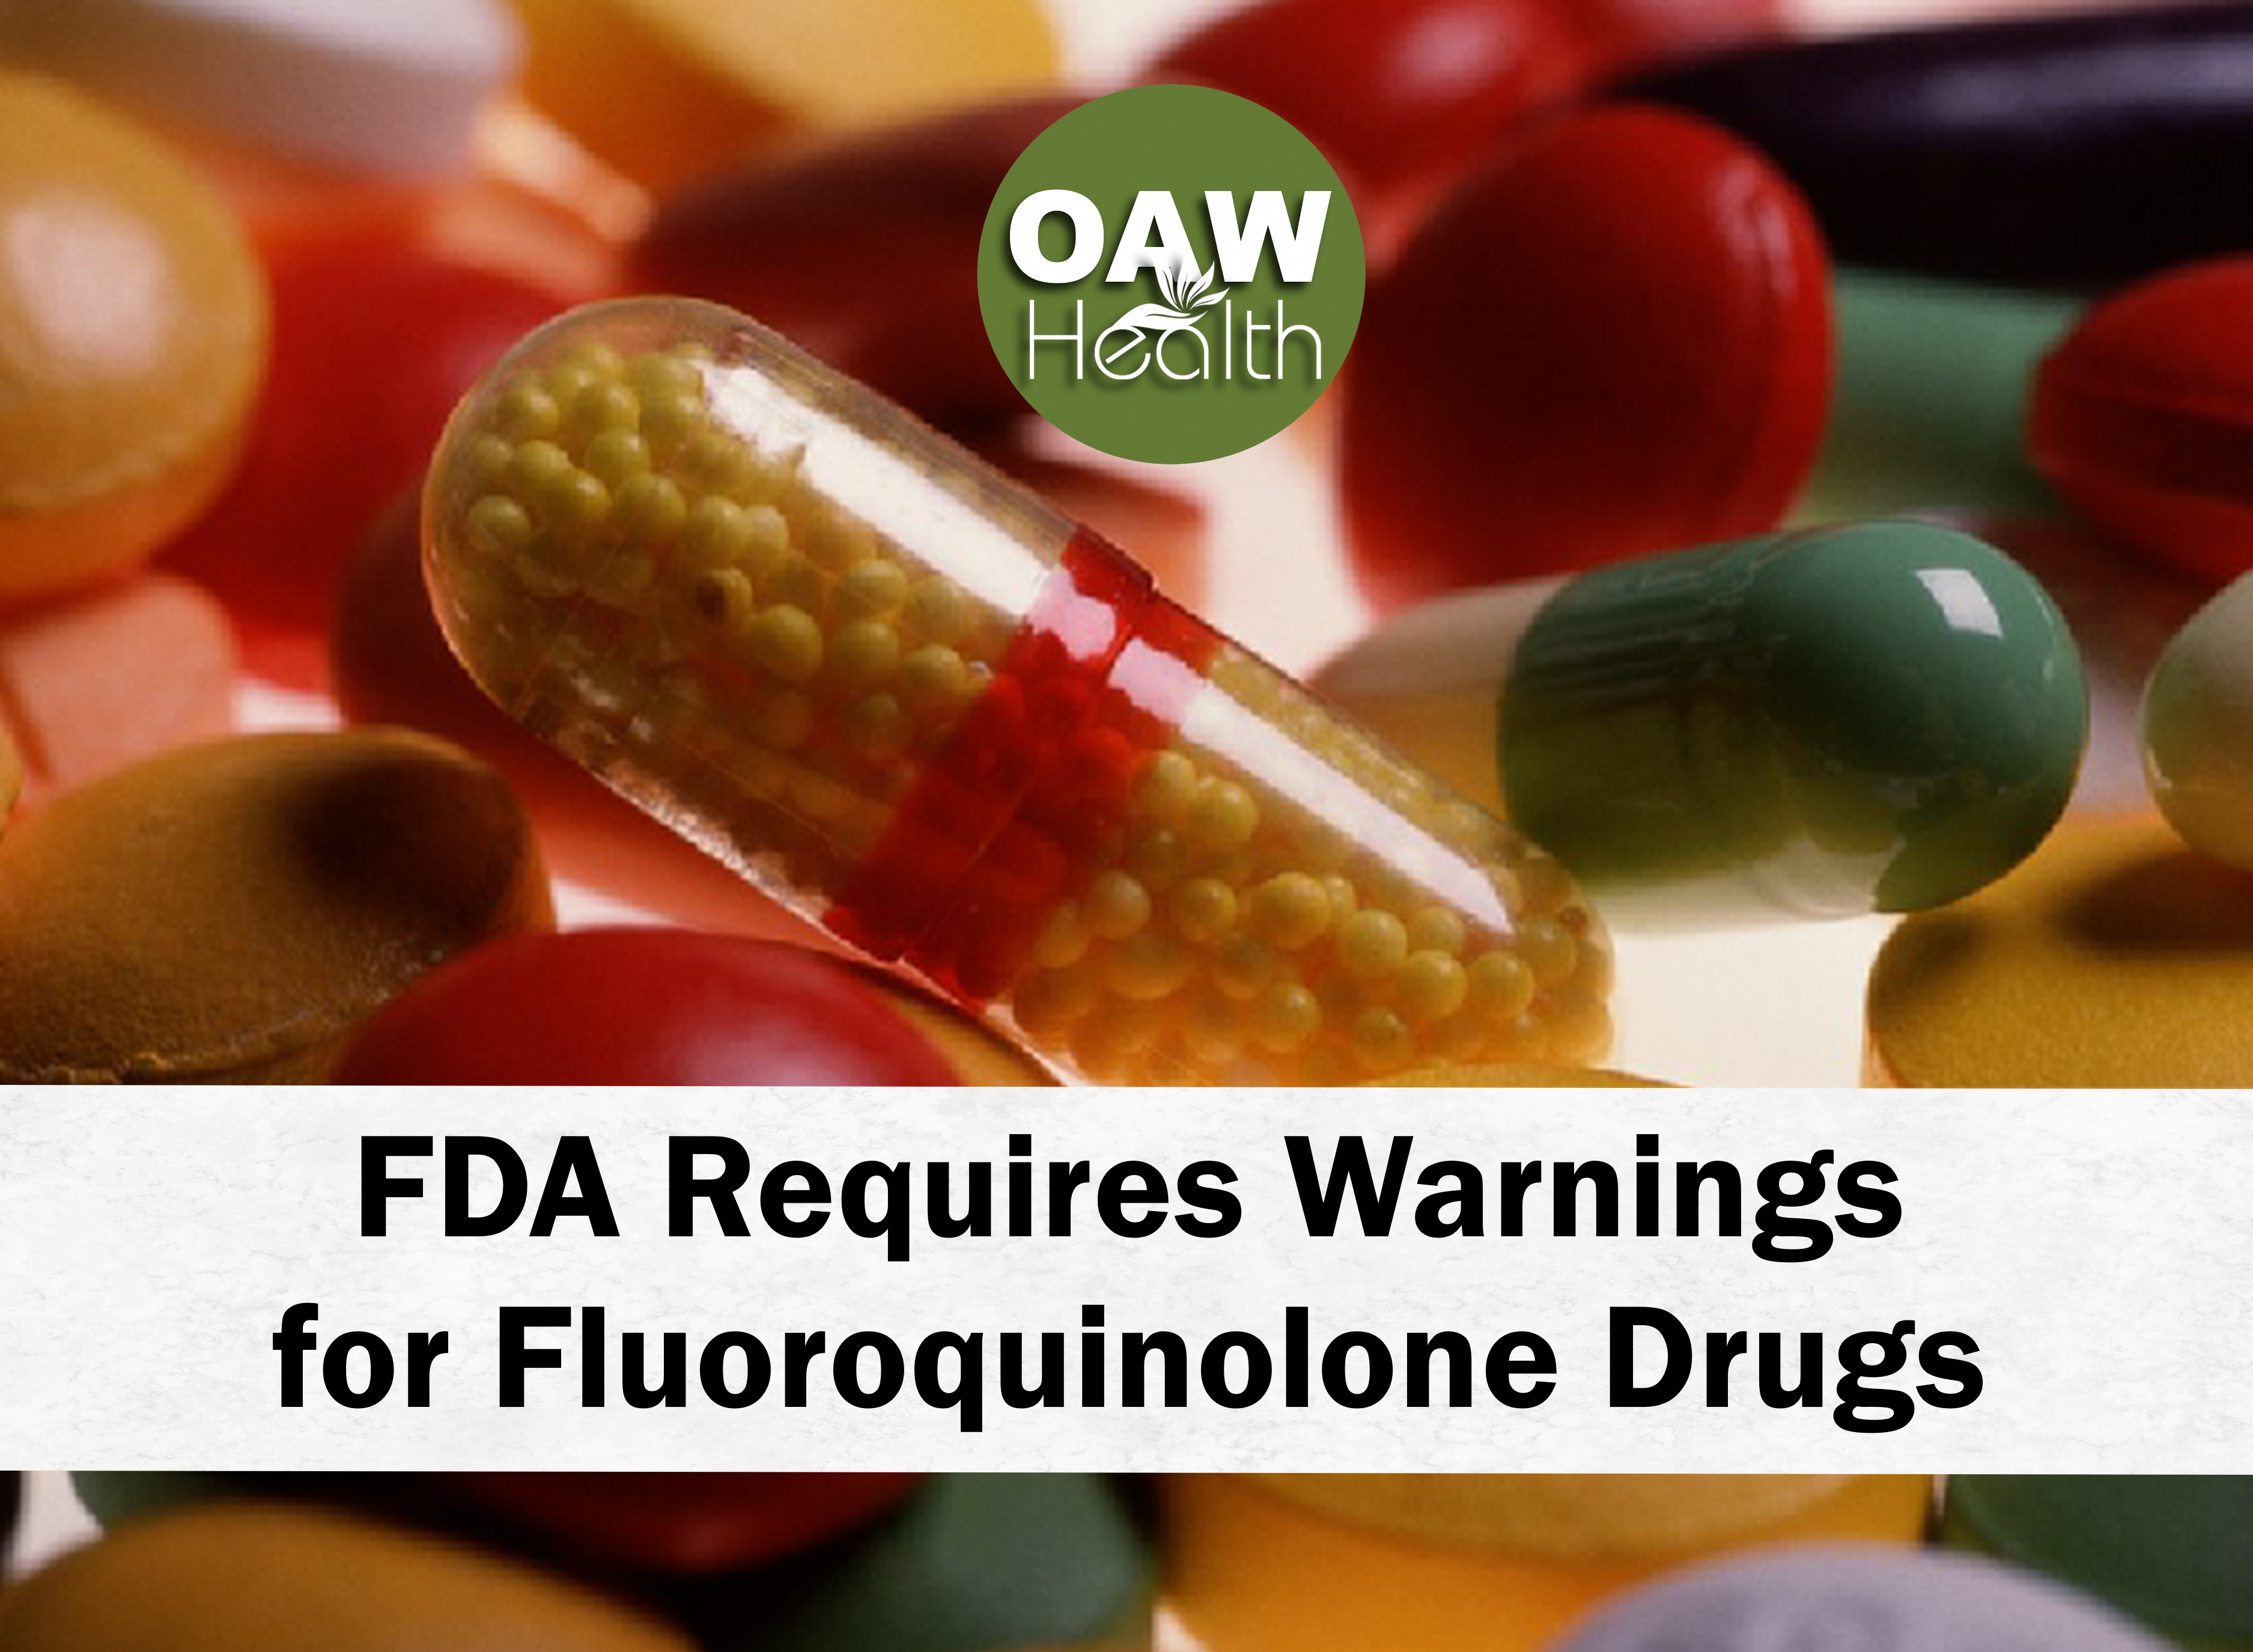 FDA Requires Warnings for Fluoroquinolone Drugs (Cipro, Levaquin, Avelox, Floxin)